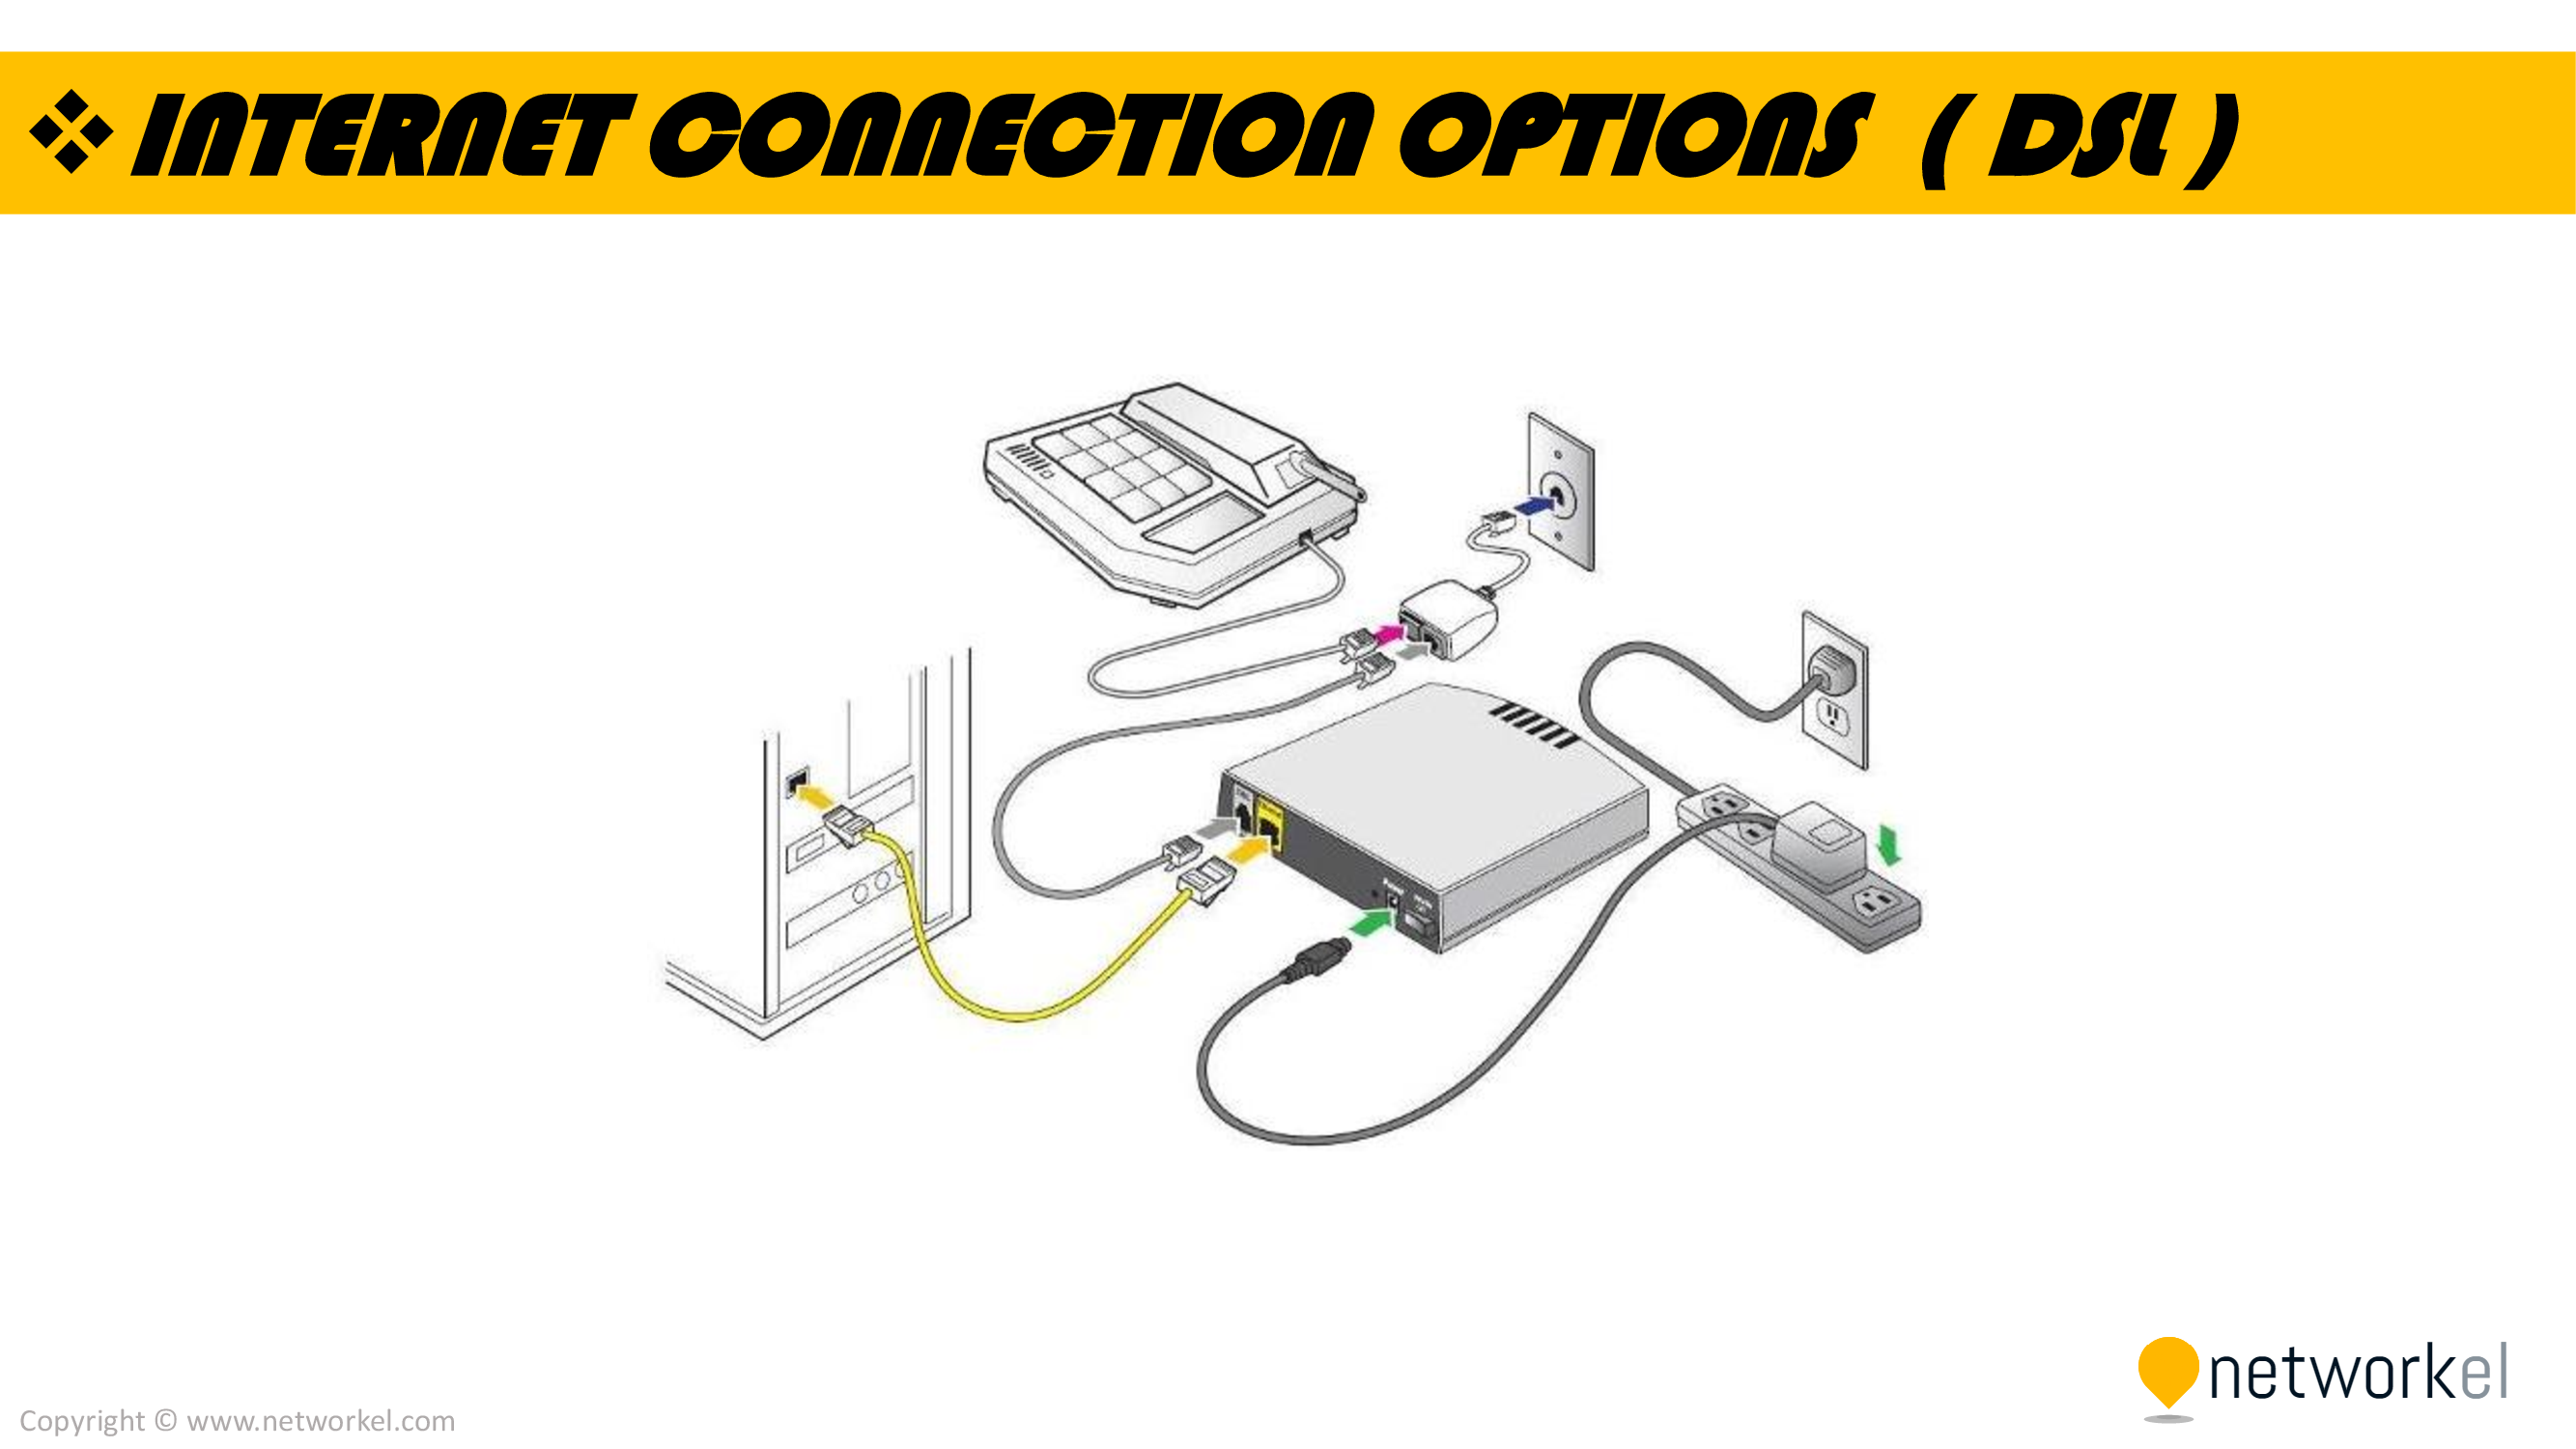 hight resolution of internet connection options dsl connection internet